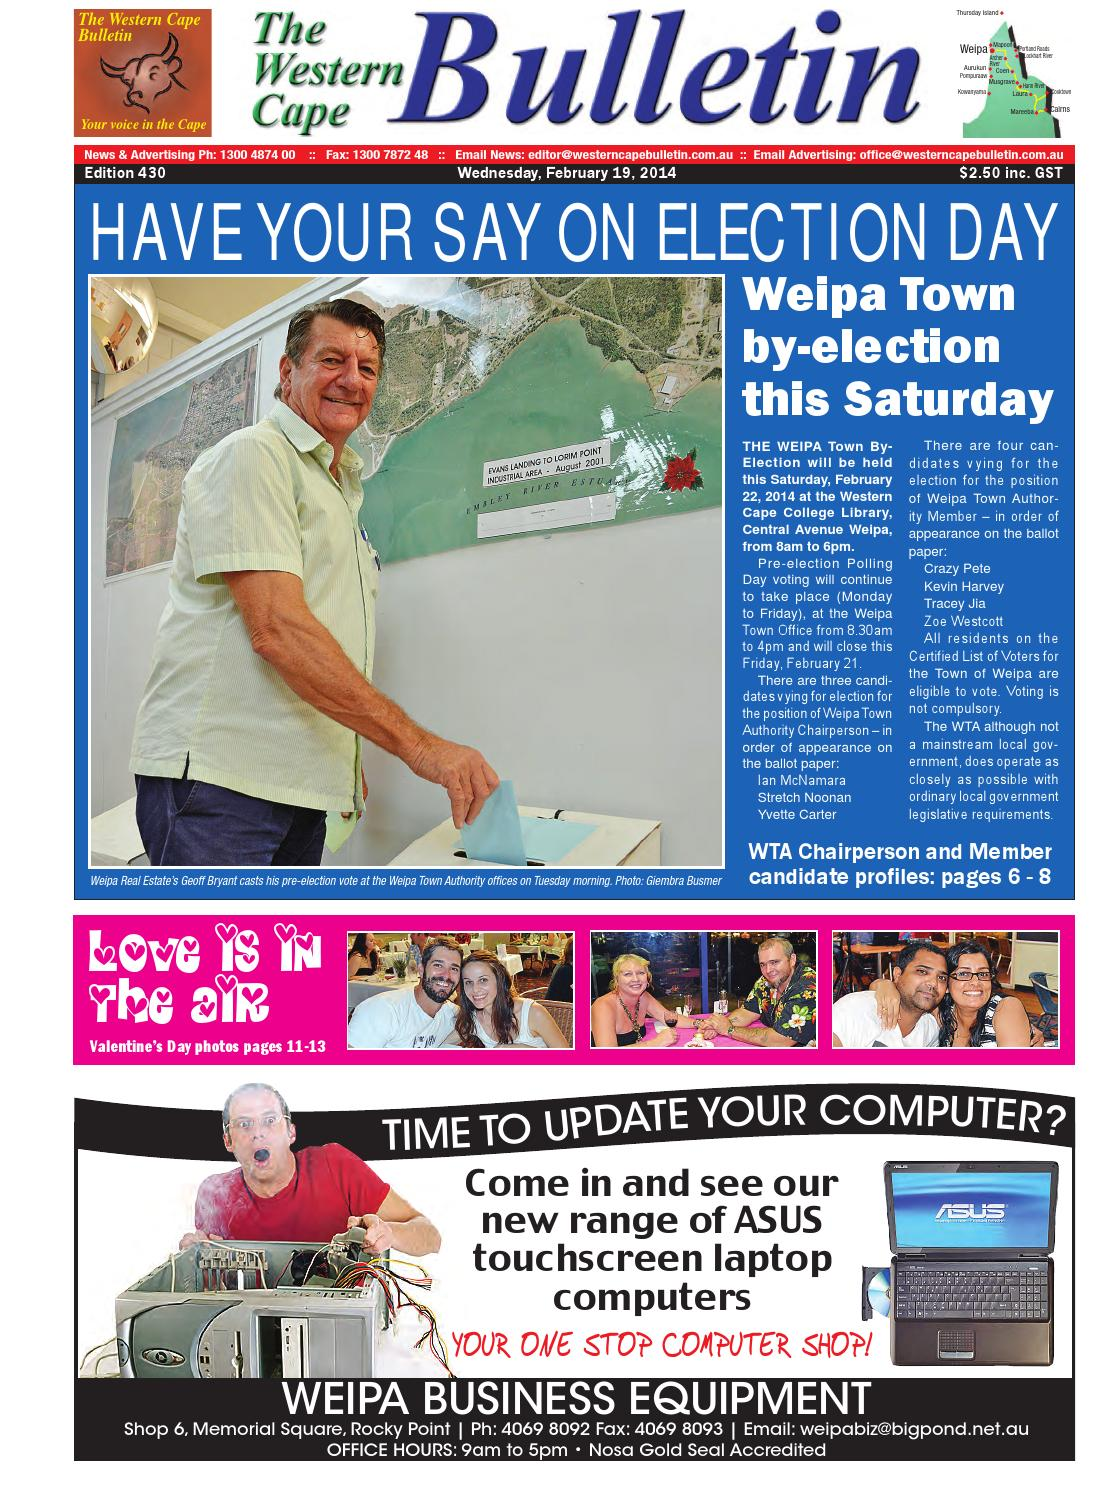 Western cape bulletn 2014 02 19 by Regional and Remote Newspapers ...